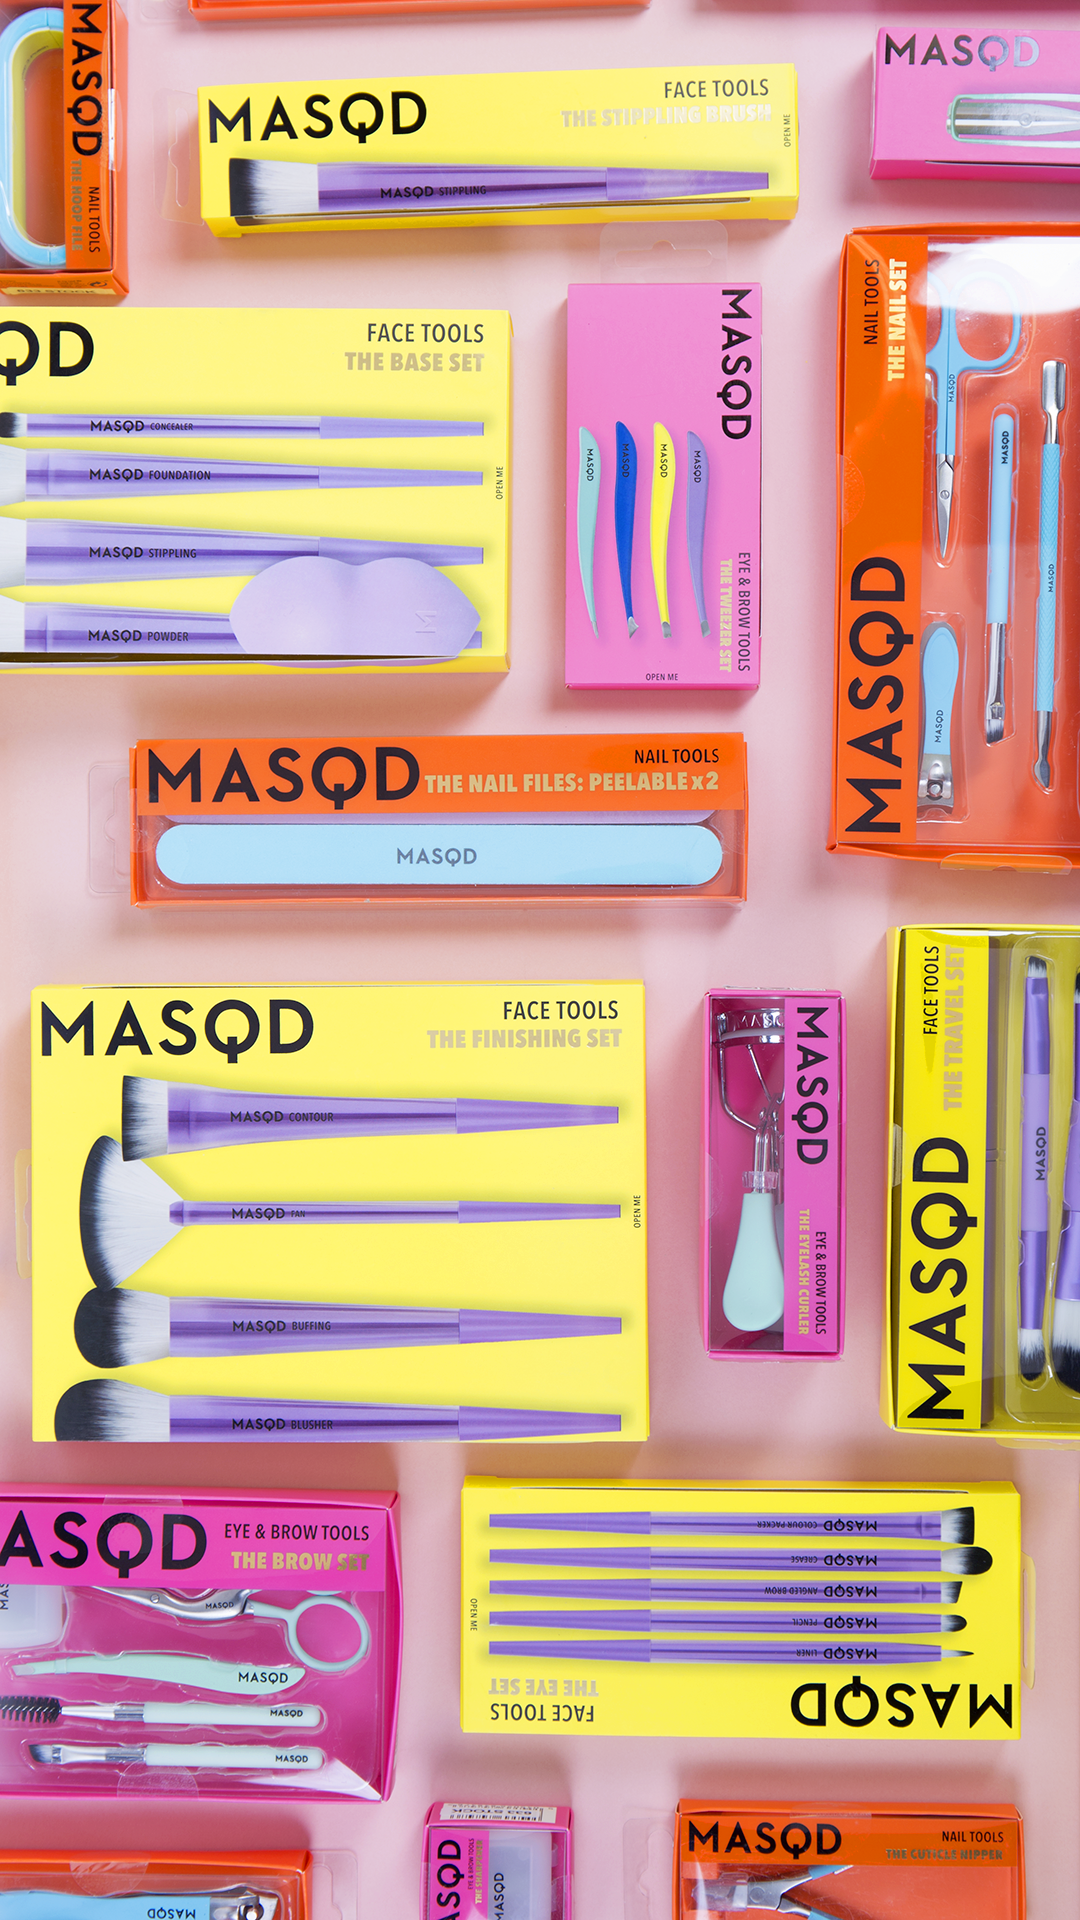 MASQD Makeup Brushes Collection at Boots Face tools